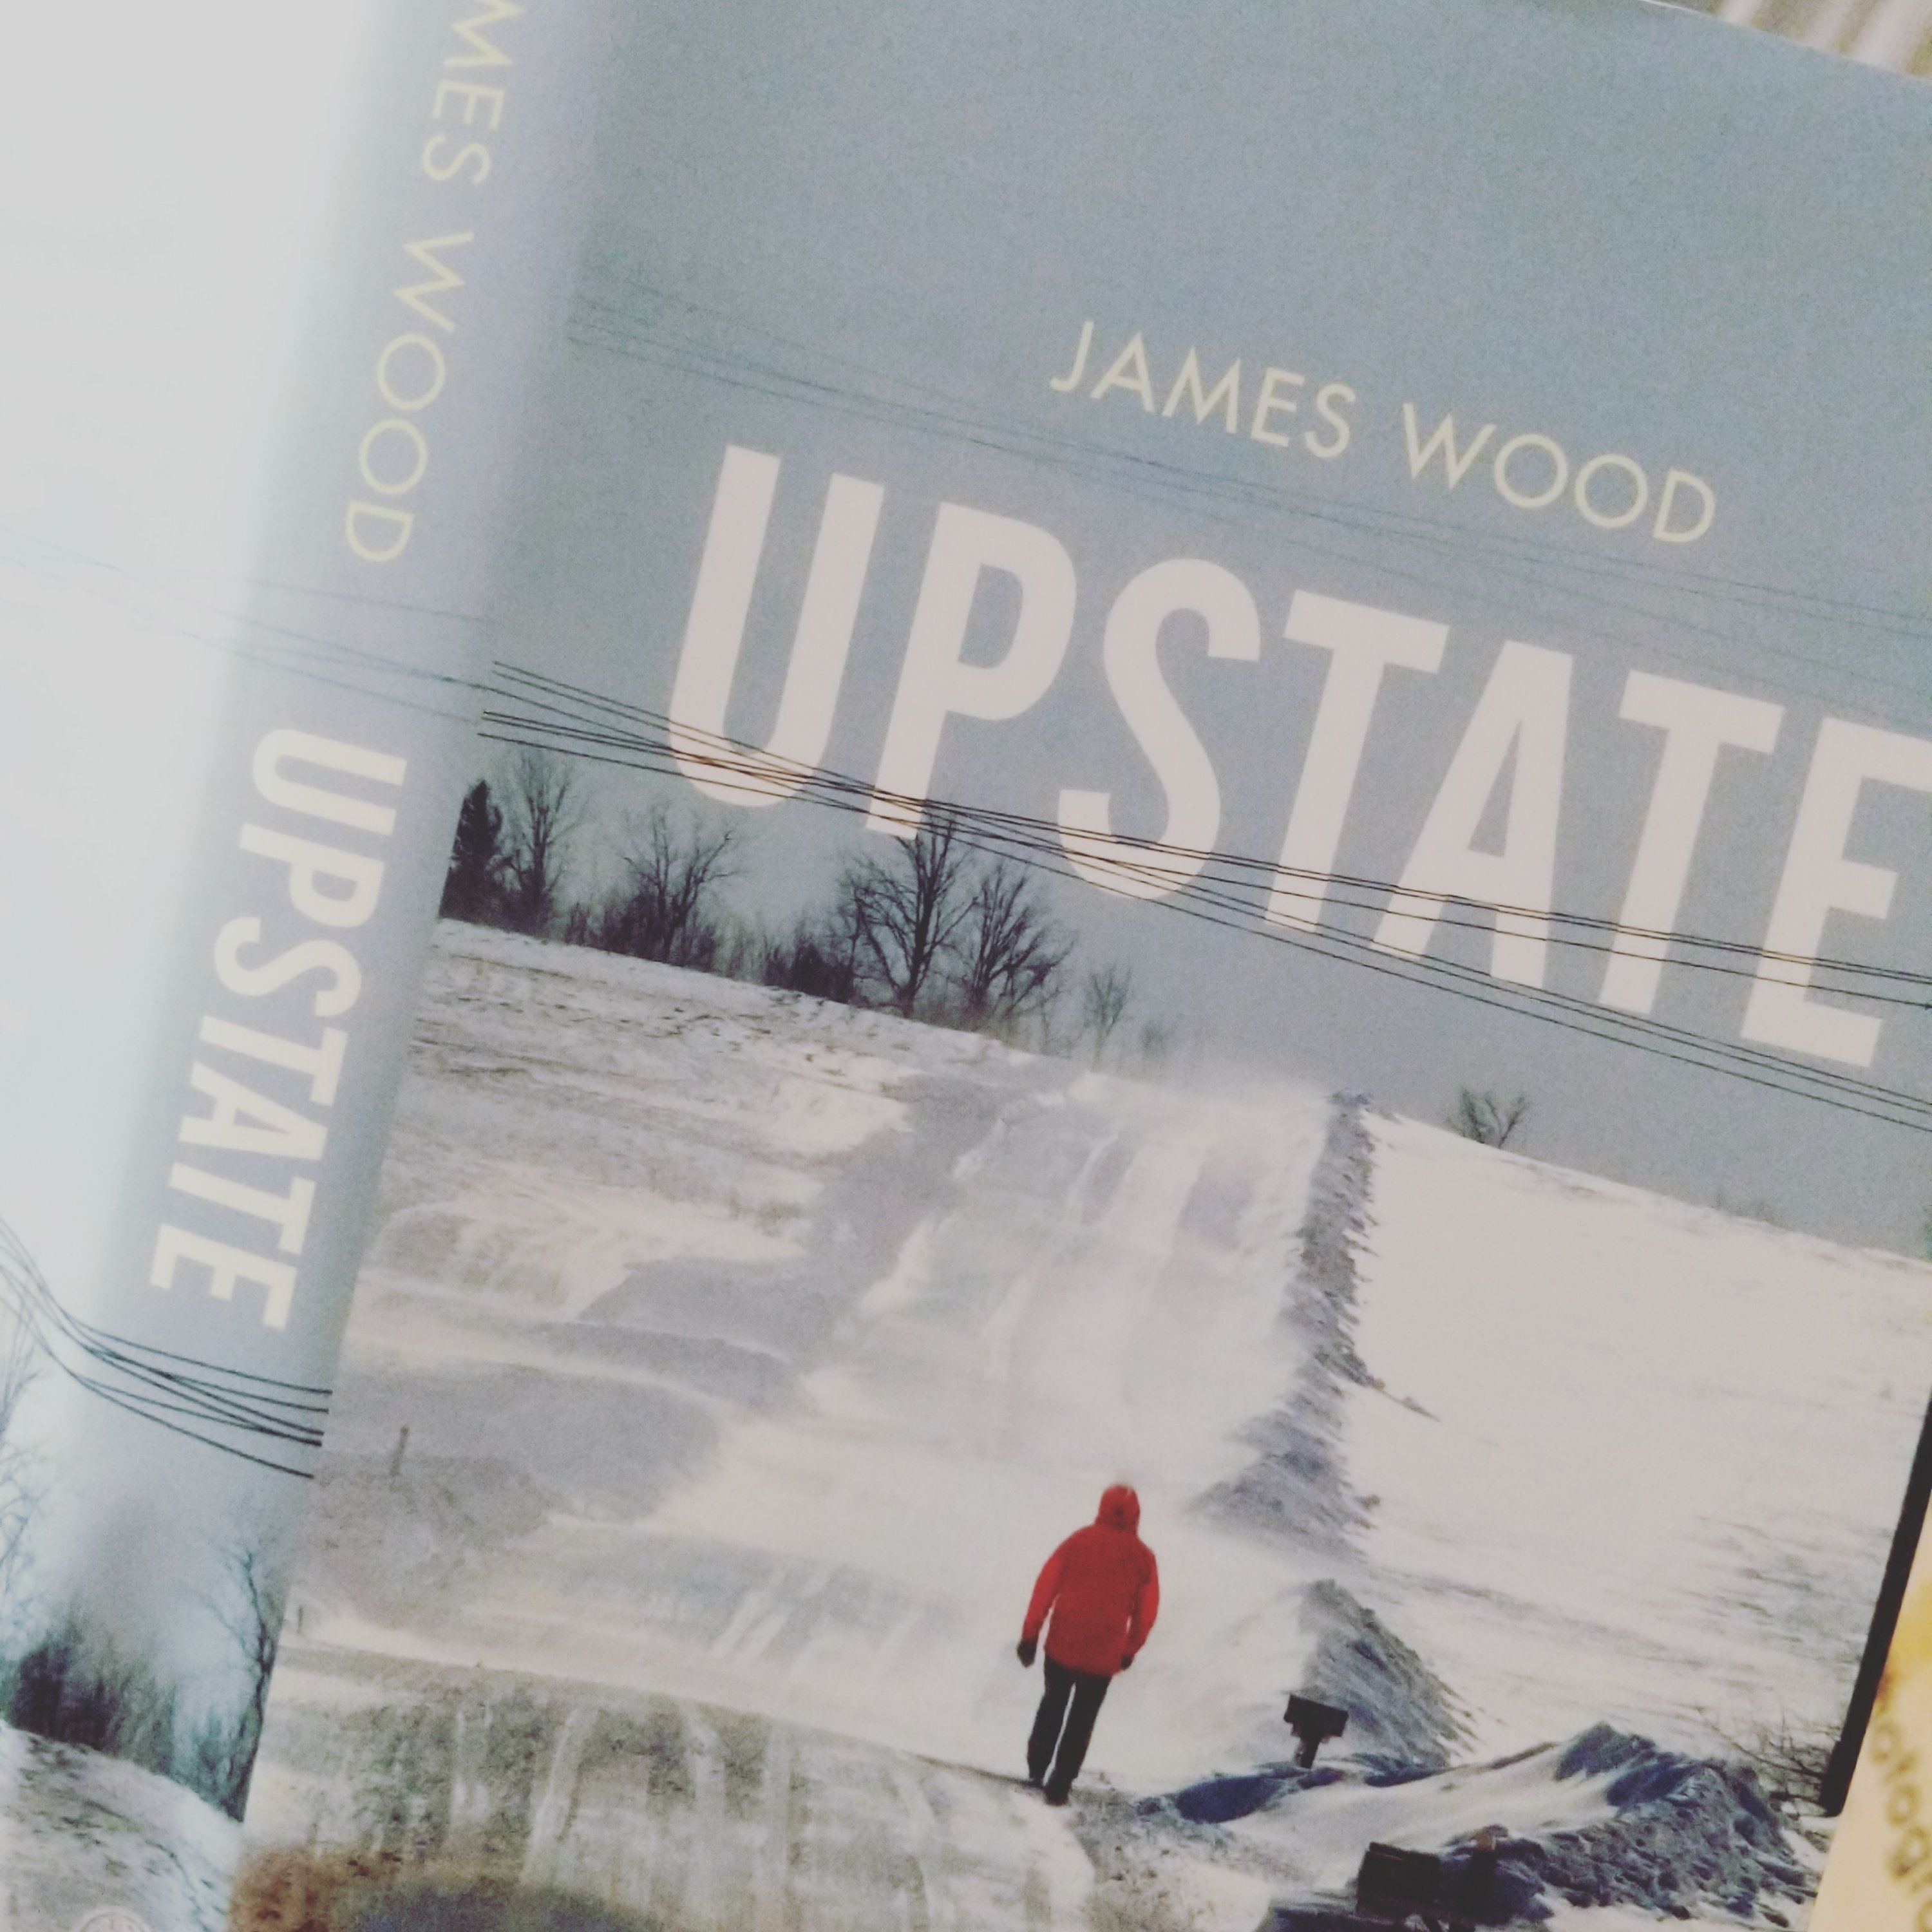 """Upstate"""" by James Wood"""